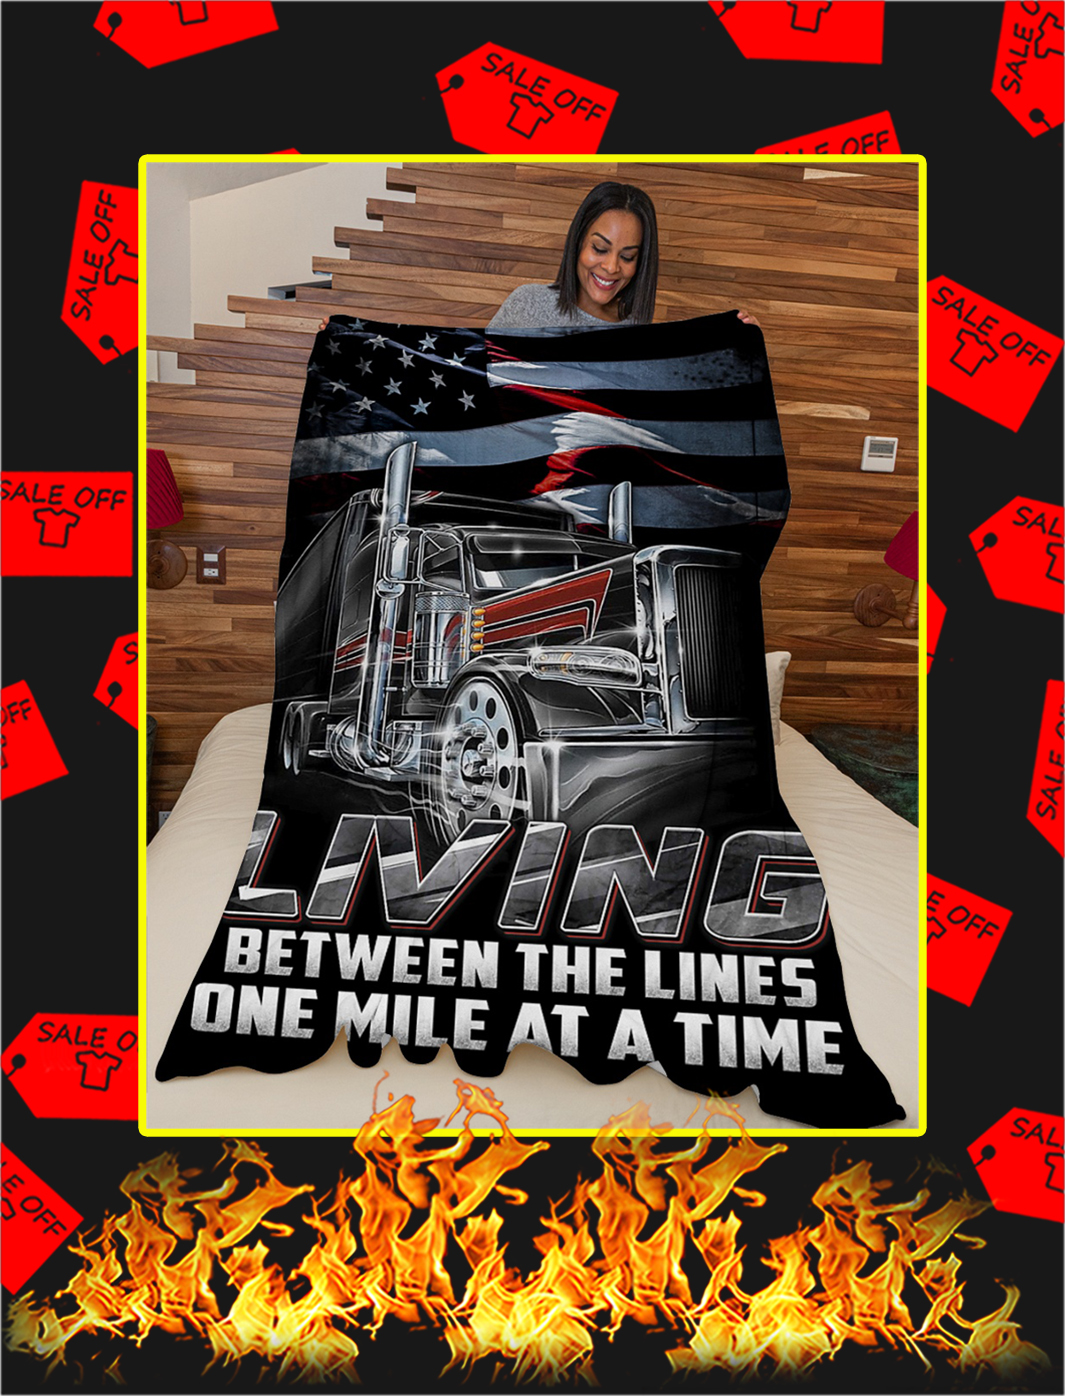 Trucker living between the lines one mile at a time blanket- x large